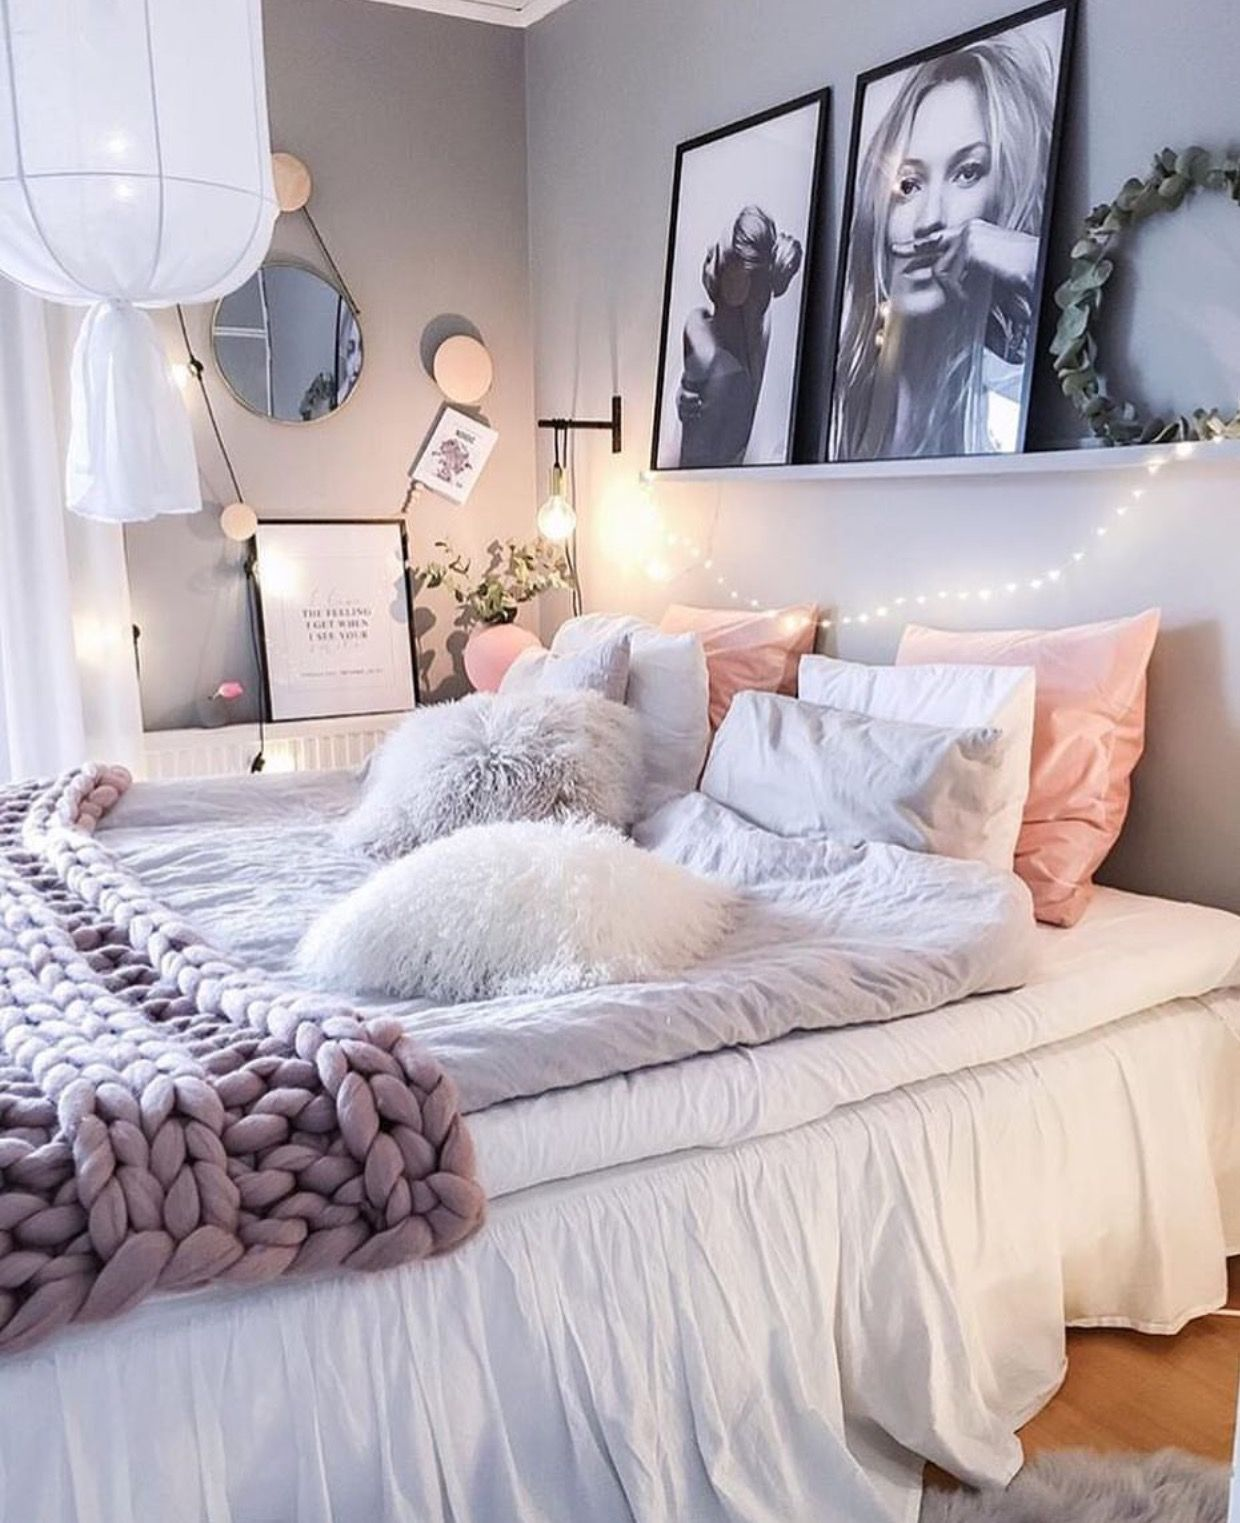 Bedroom Girly Ideas: Bedroom Ideas In 2019